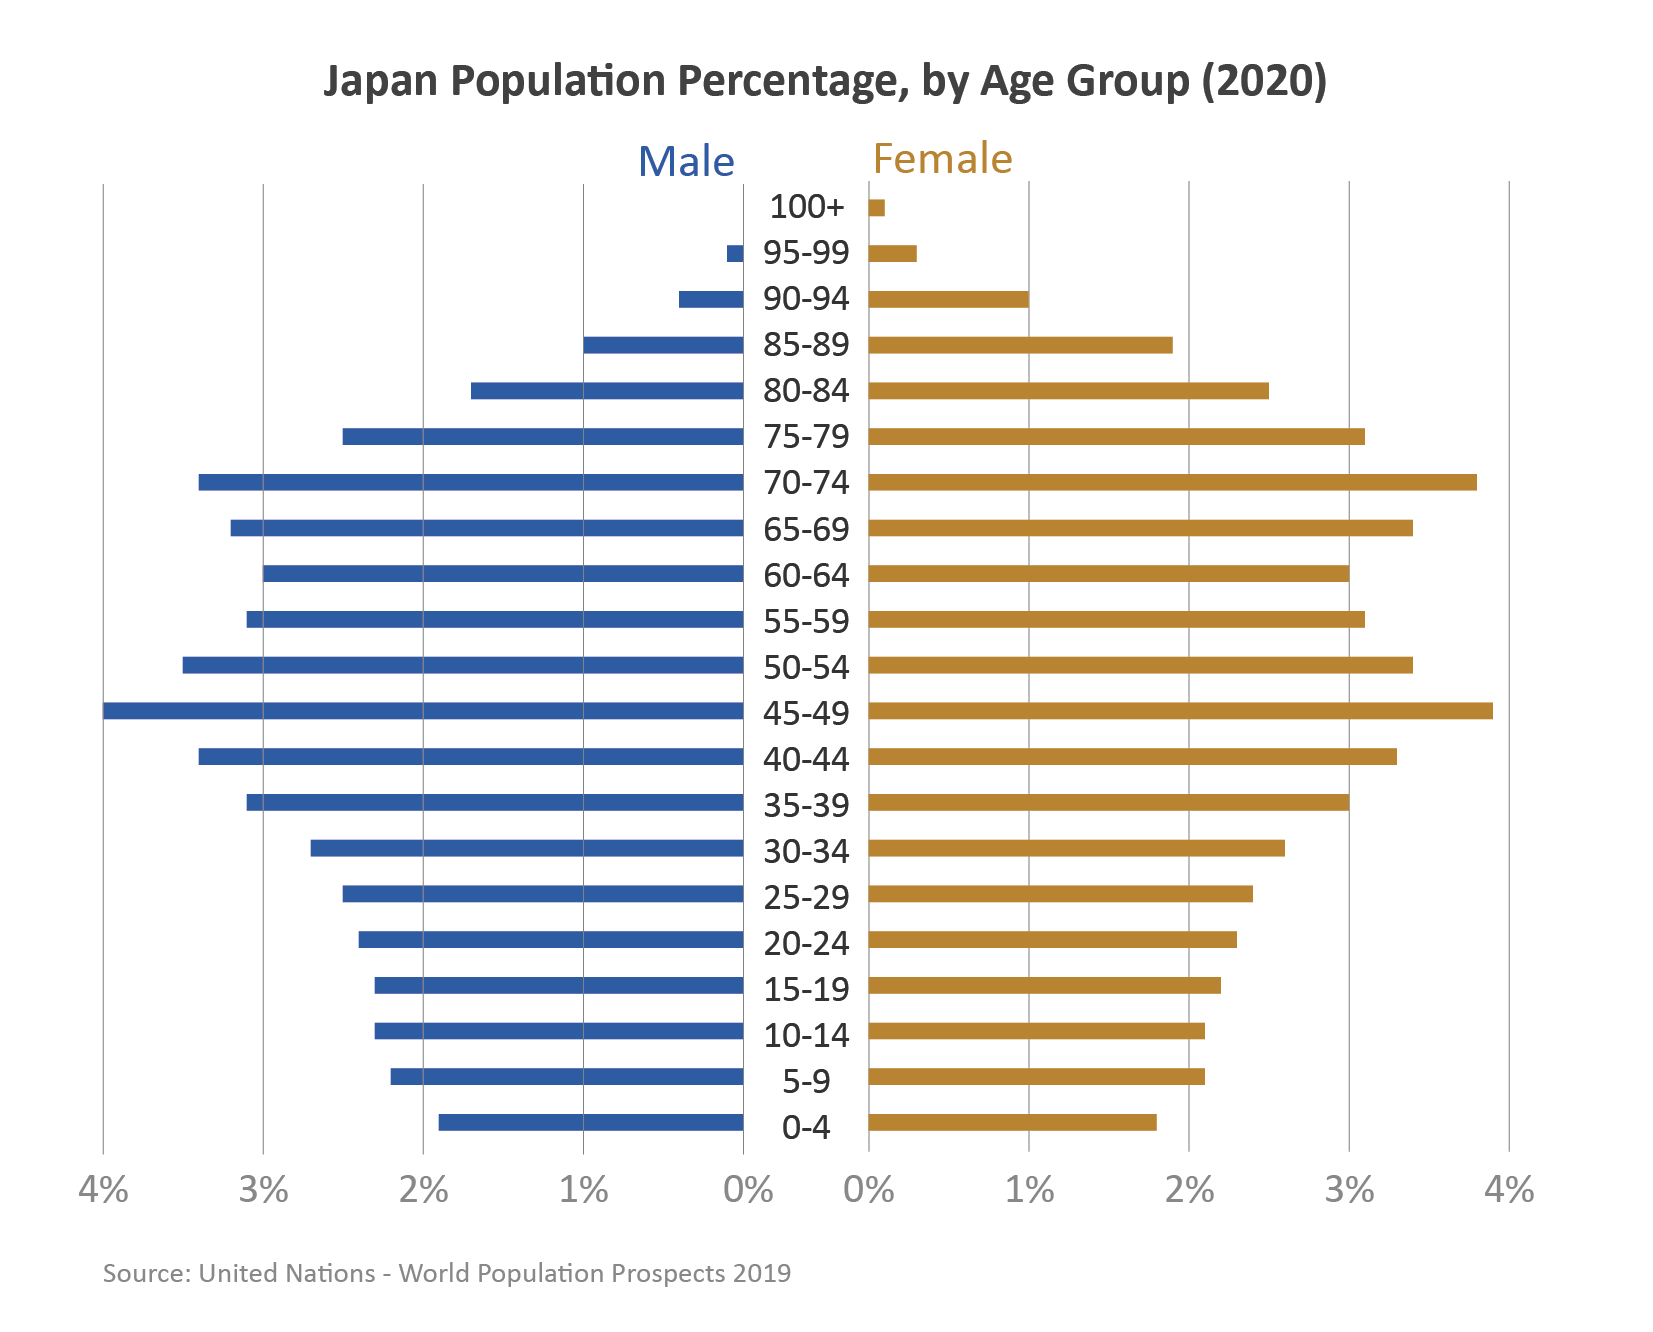 Population pyramid showing the number of males and females in Japan by age in 2020